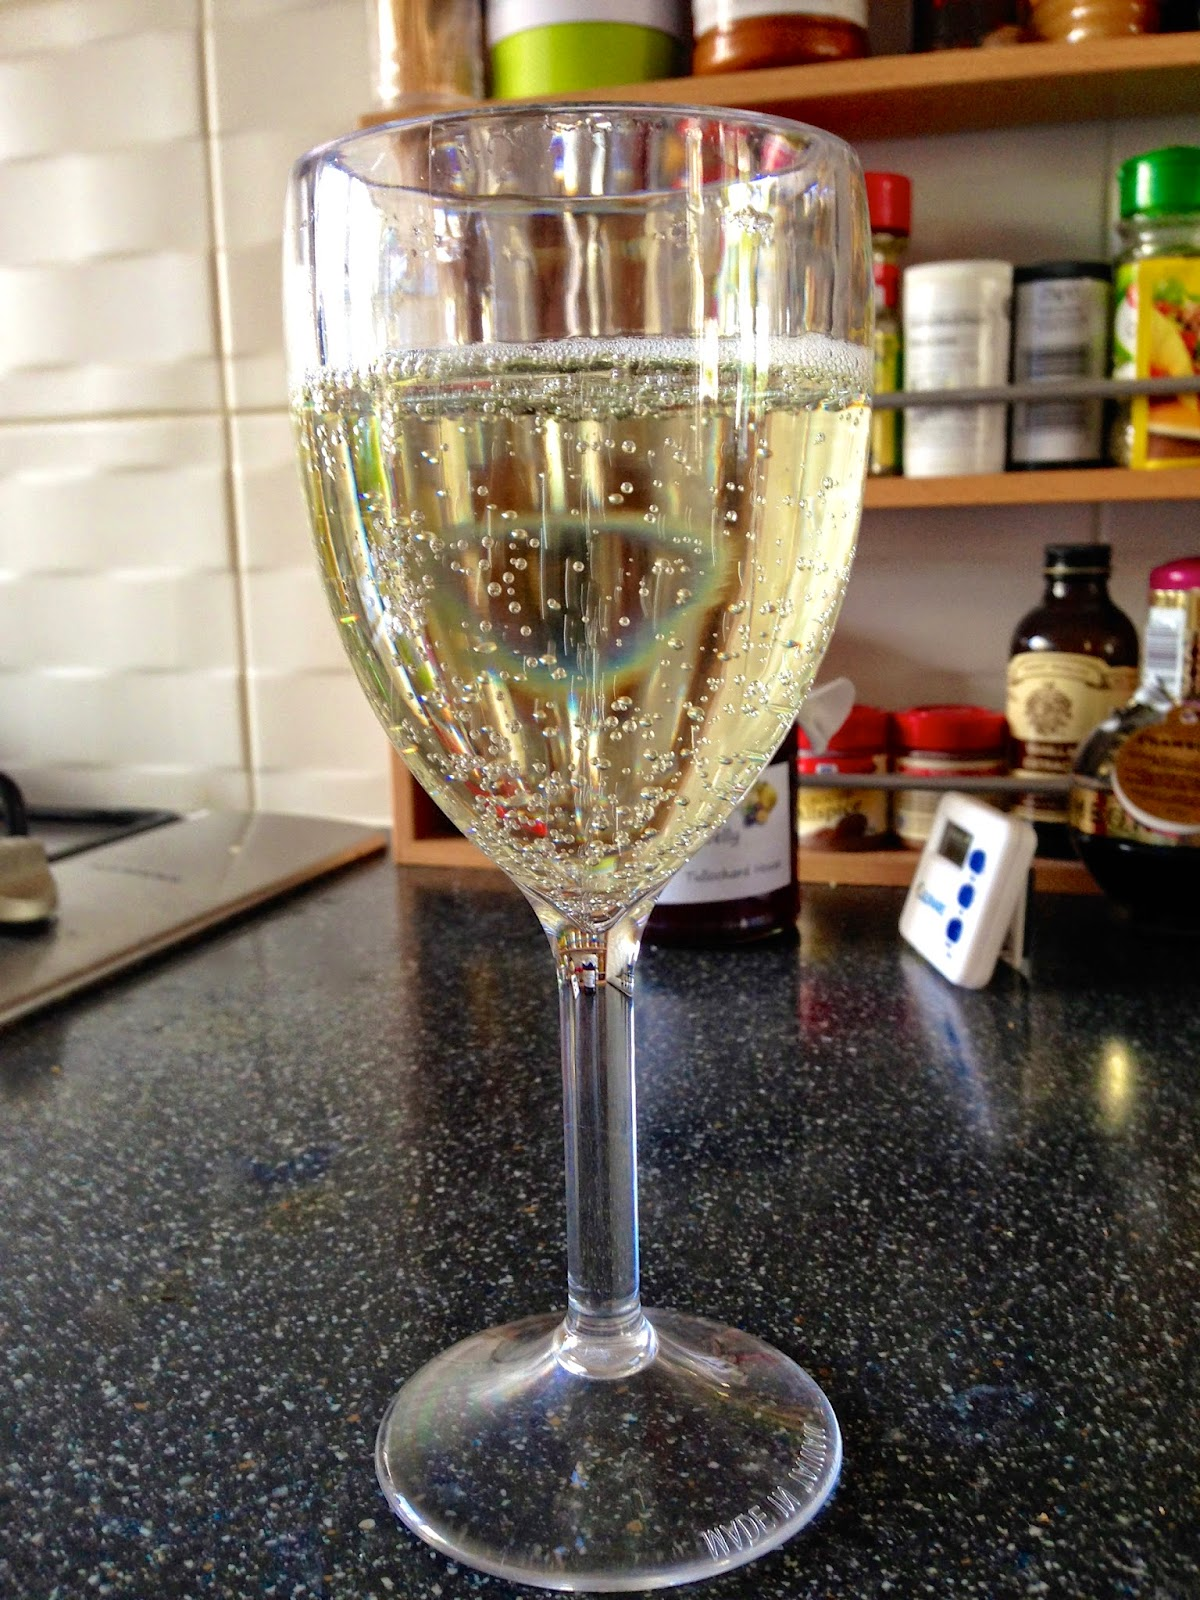 Glass of Prosecco